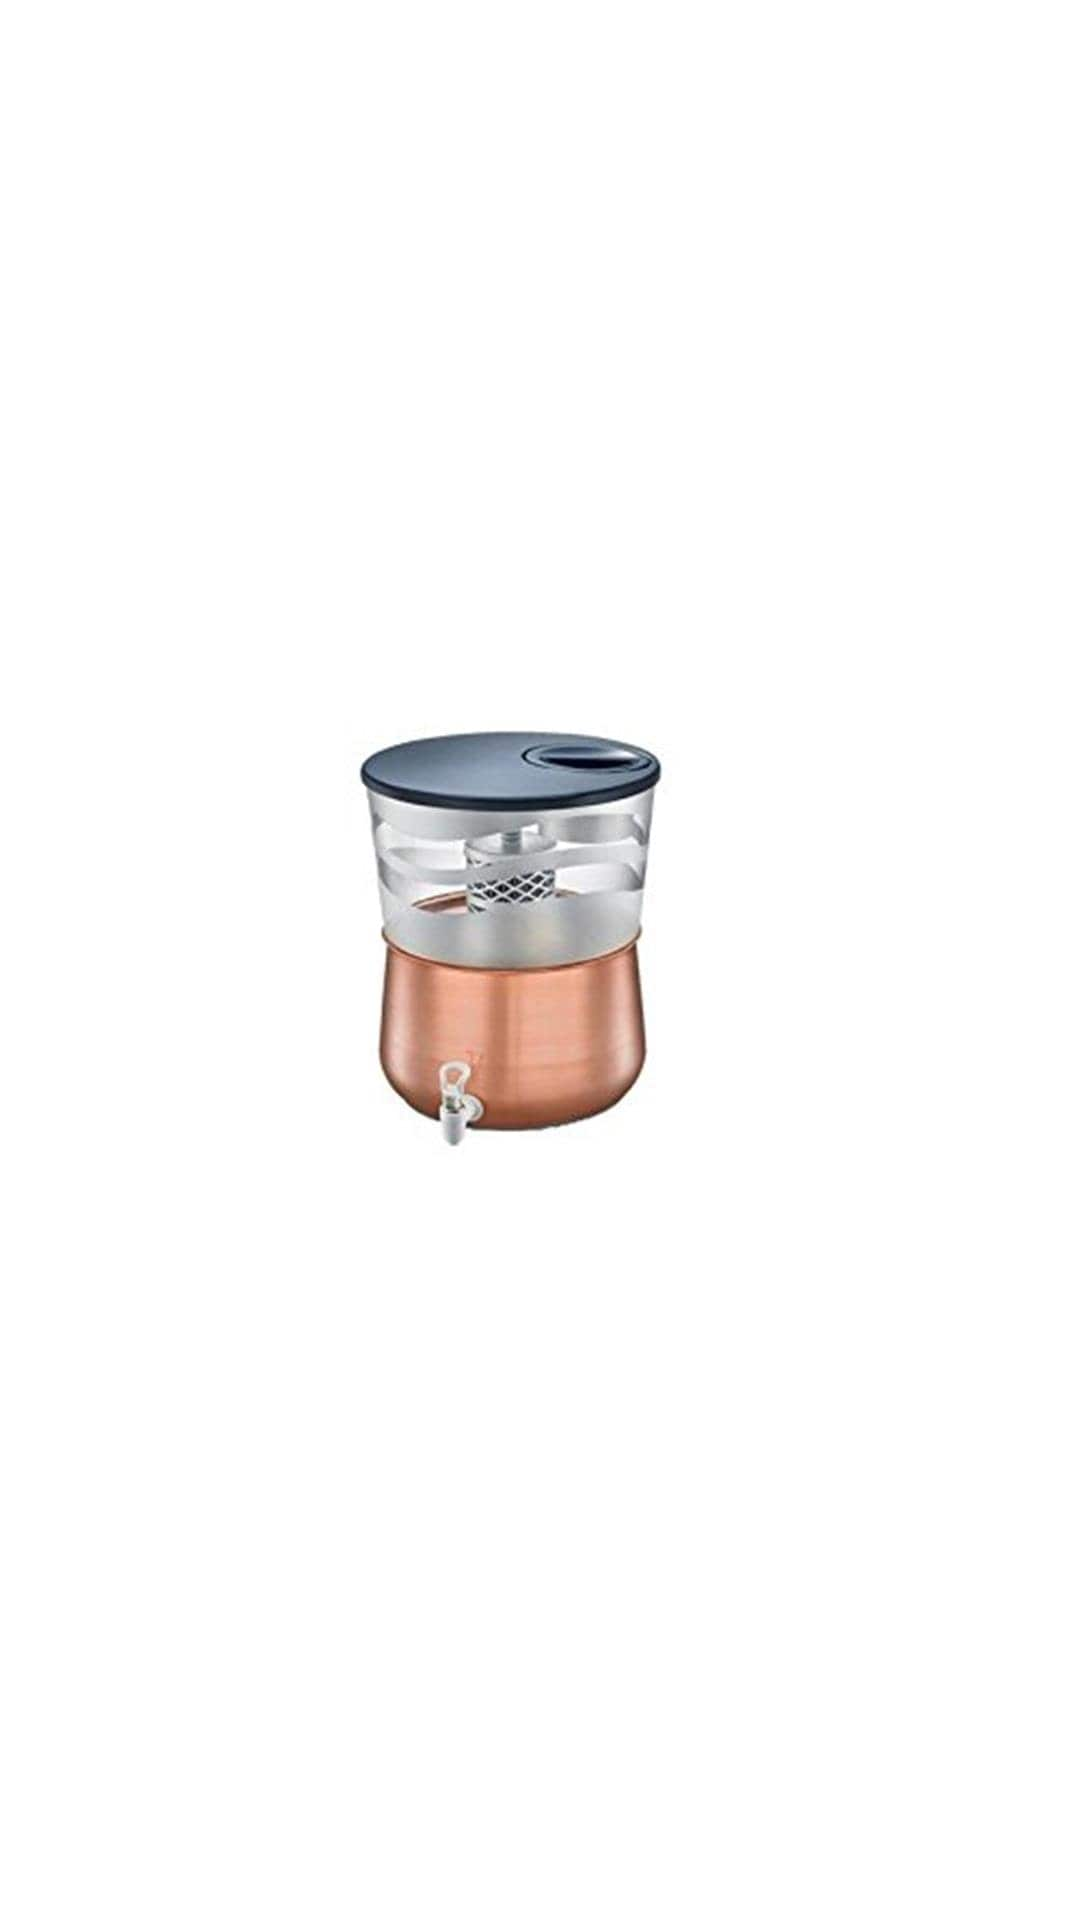 Prestige Tattva 16L Gravity Based Water Purifier (Copper)